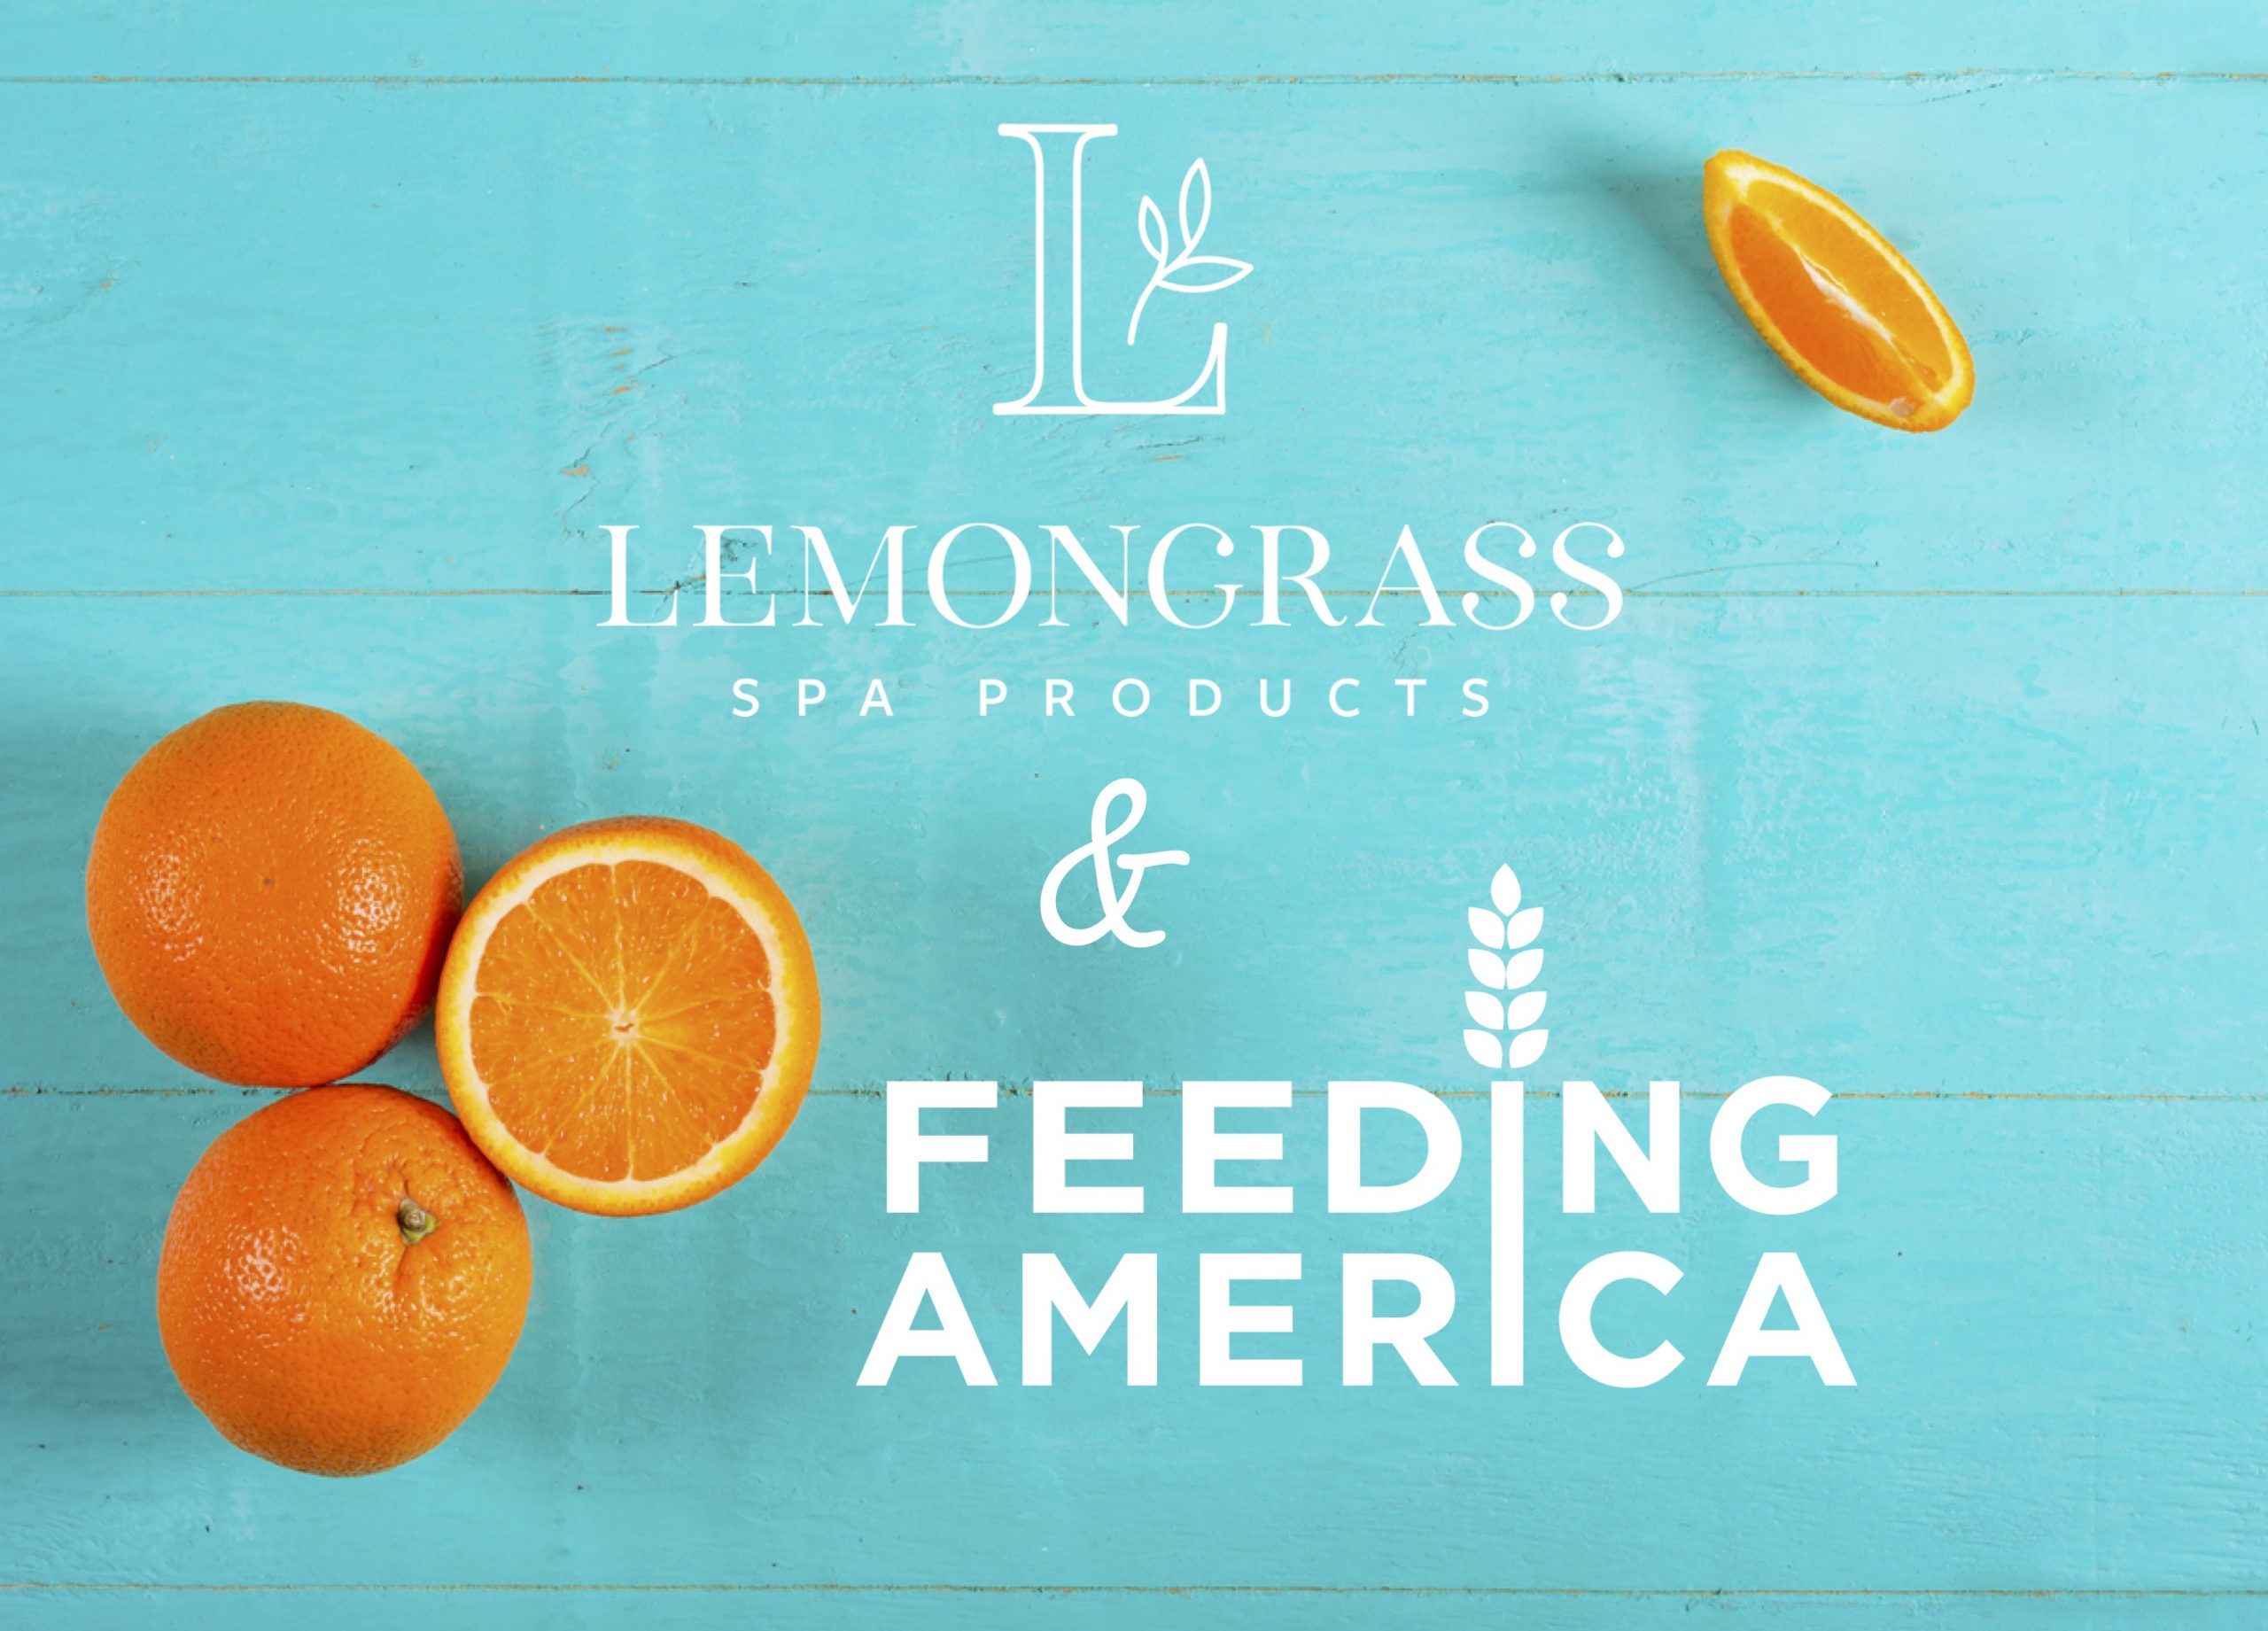 Lemongrass Spa Products Donates Tens of Thousands of Meals Across America